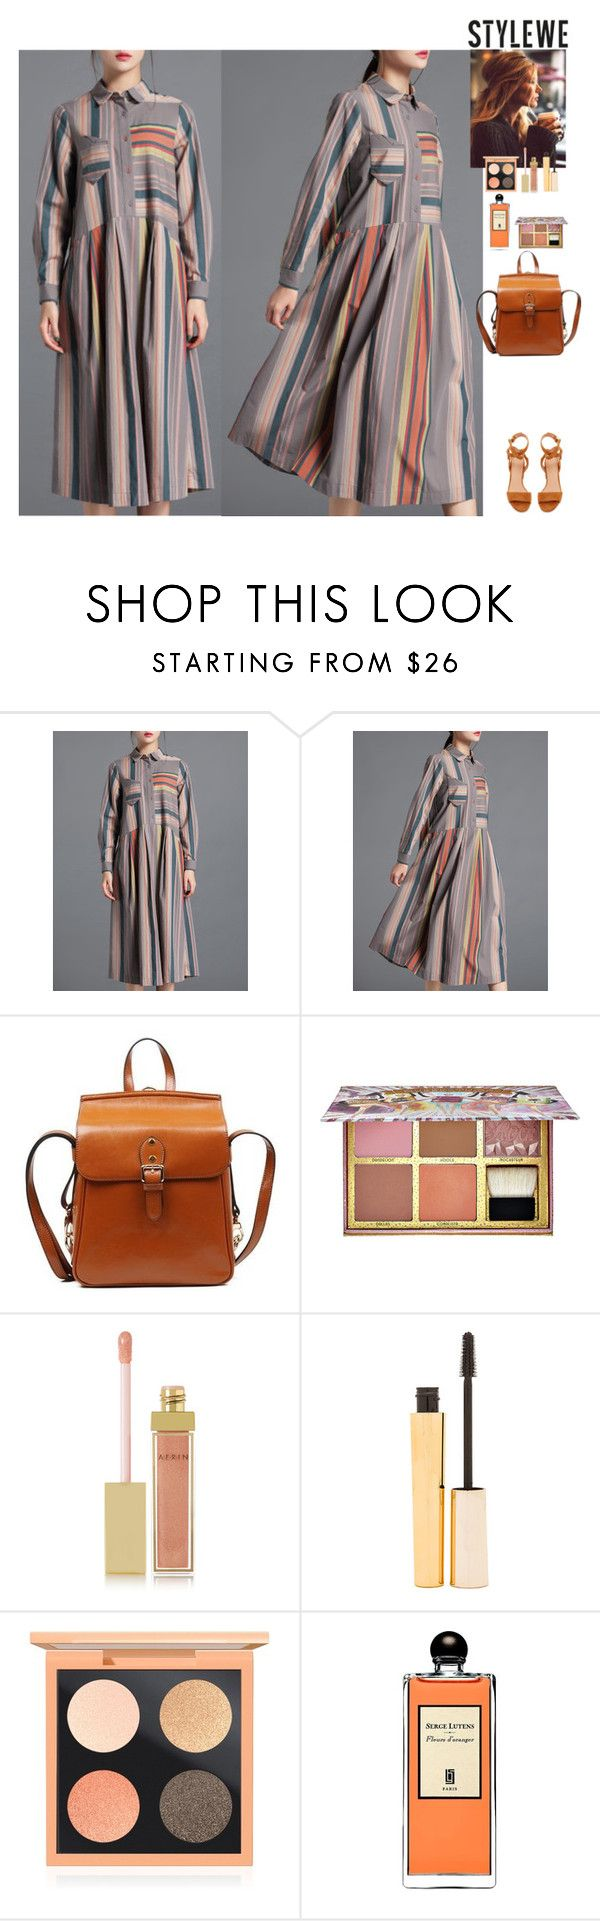 Outfit StyleWe by eliza-redkina on Polyvore featuring мода, Sigerson Morrison, Benefit, Stila, MAC Cosmetics, AERIN and Serge Lutens